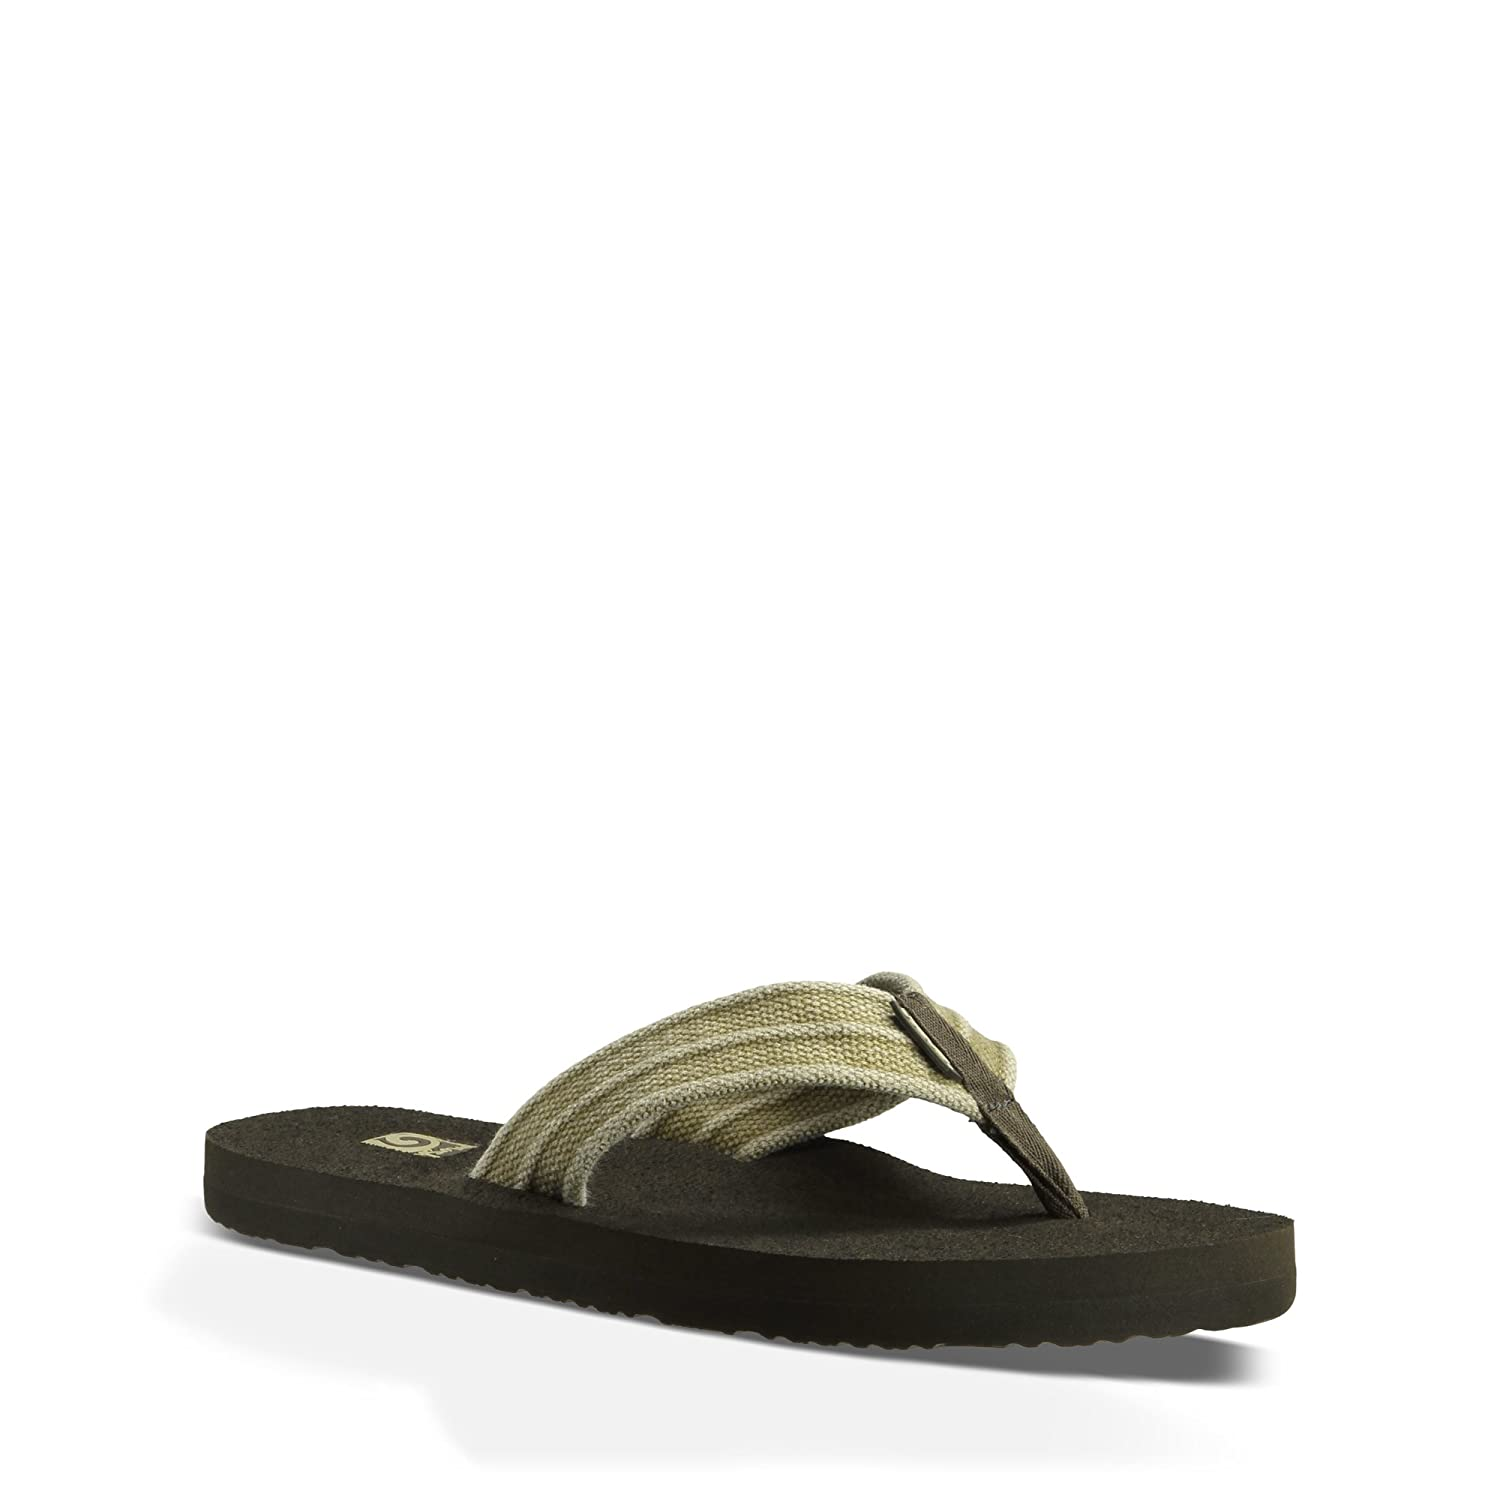 30a16a570b06d Teva Men s Mush II Canvas Flip-Flop  Buy Online at Low Prices in India -  Amazon.in